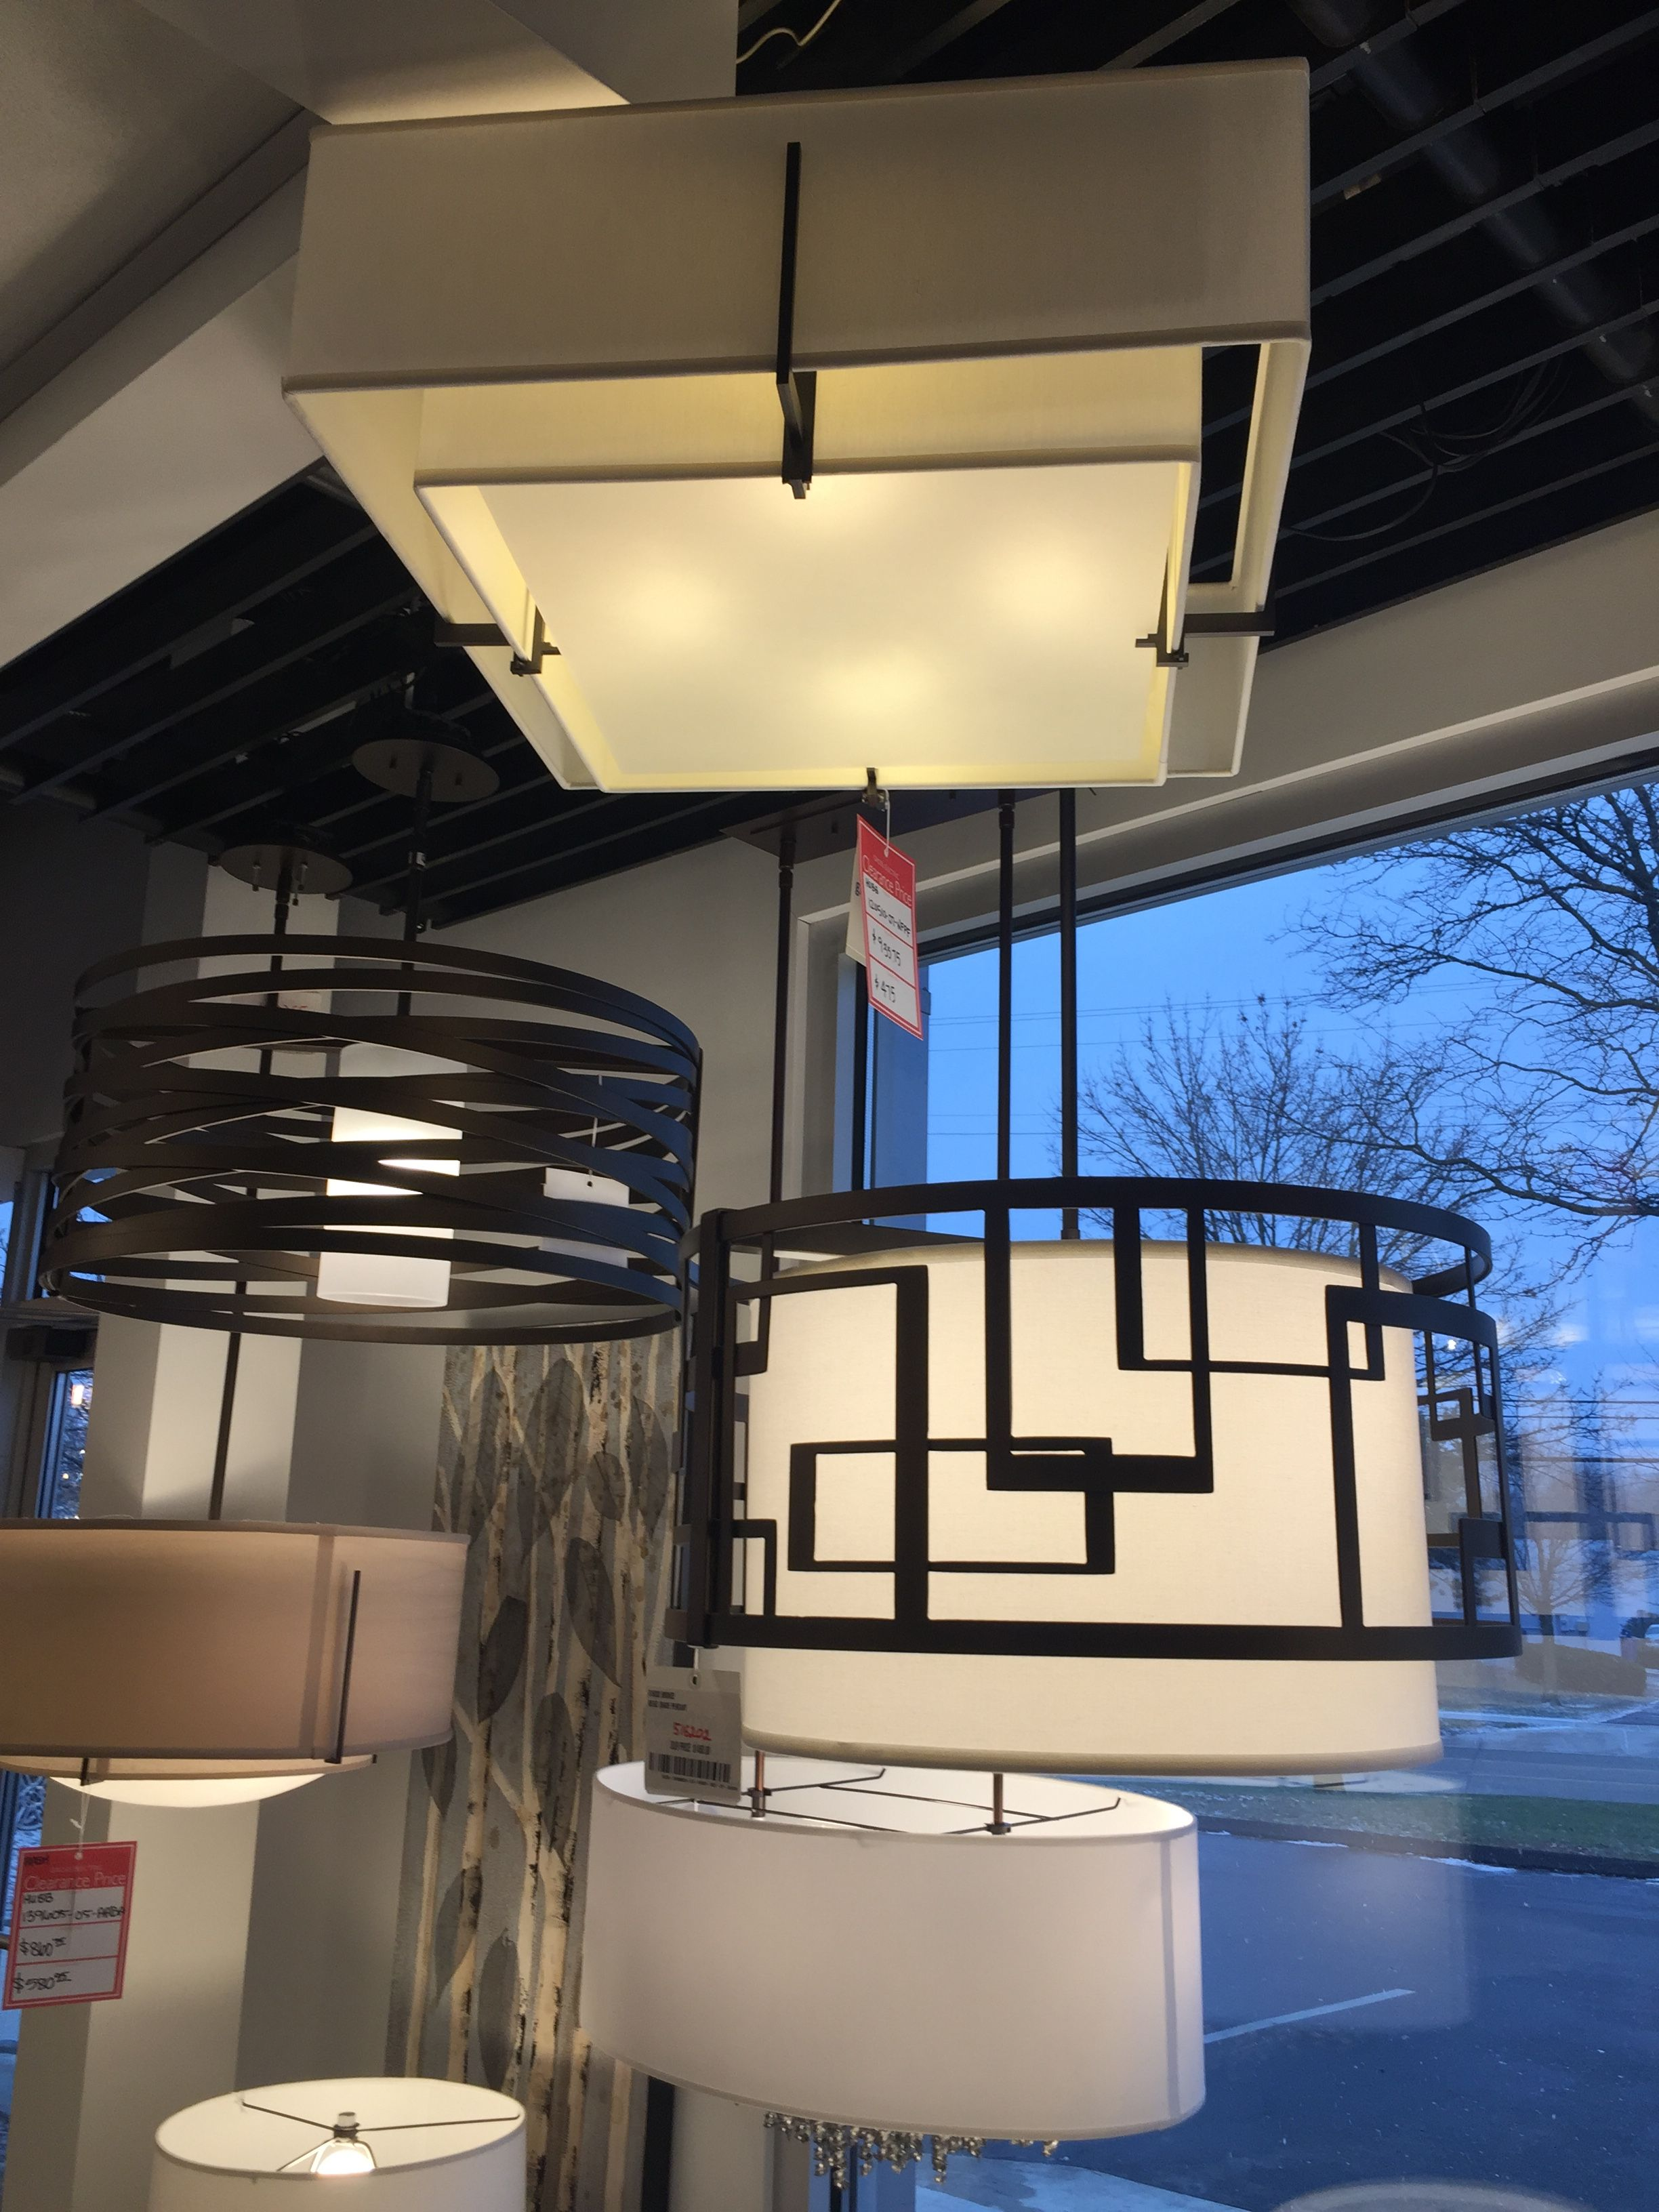 Geometric shapes another hot lighting trend see more lighting fixtures in our showroom